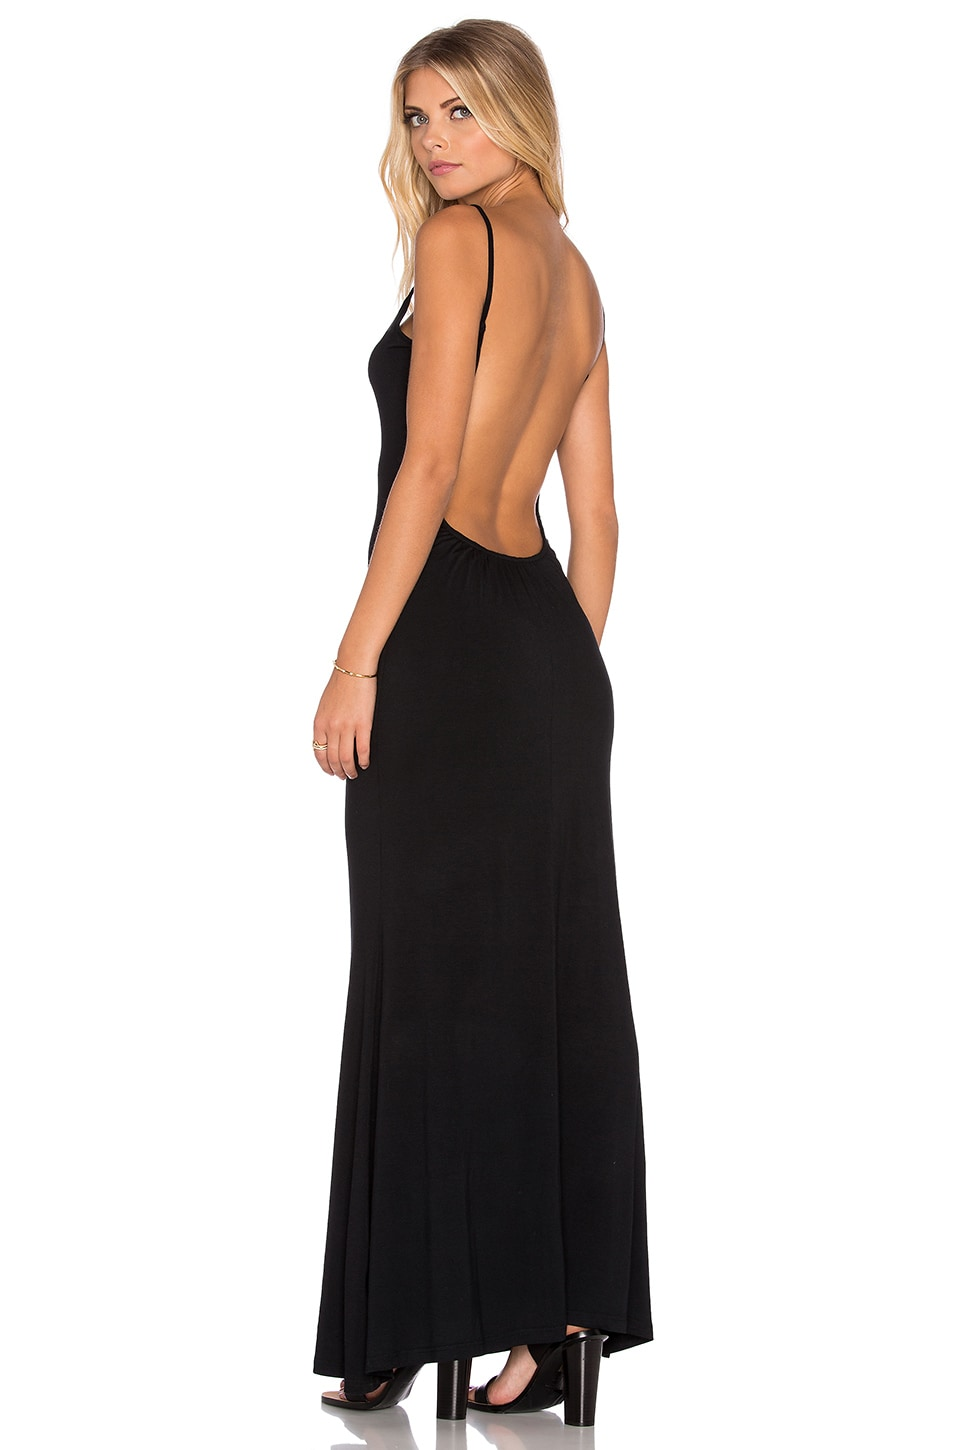 RISE Take Me Backless Dress in Black